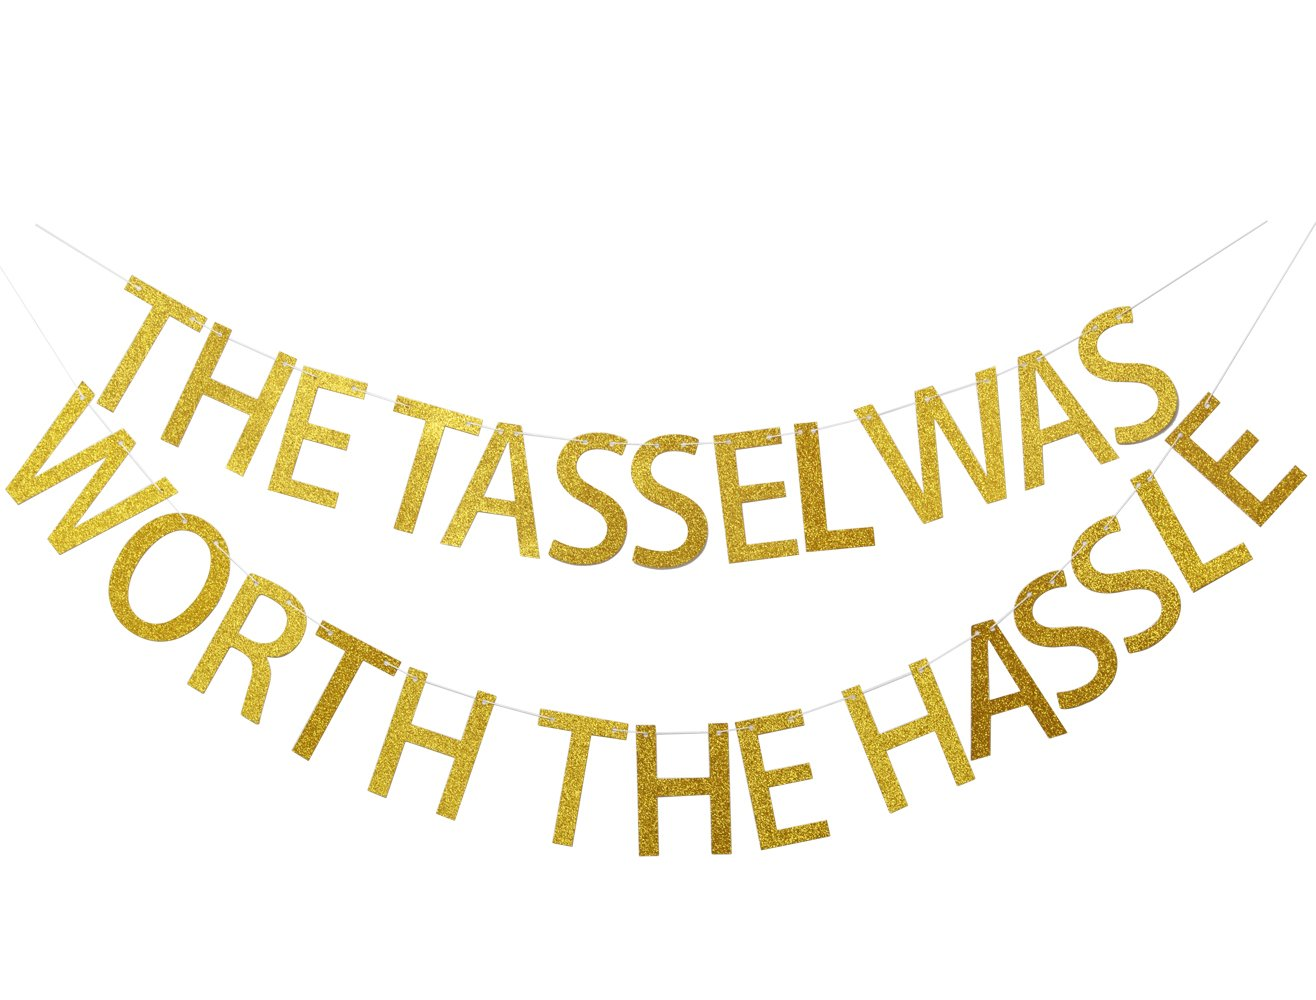 The Tassel Was Worth The Hassle Gold Glitter Banner, Graduation Sign Photo Props,Unique Gifts for College, University & School Grad Students